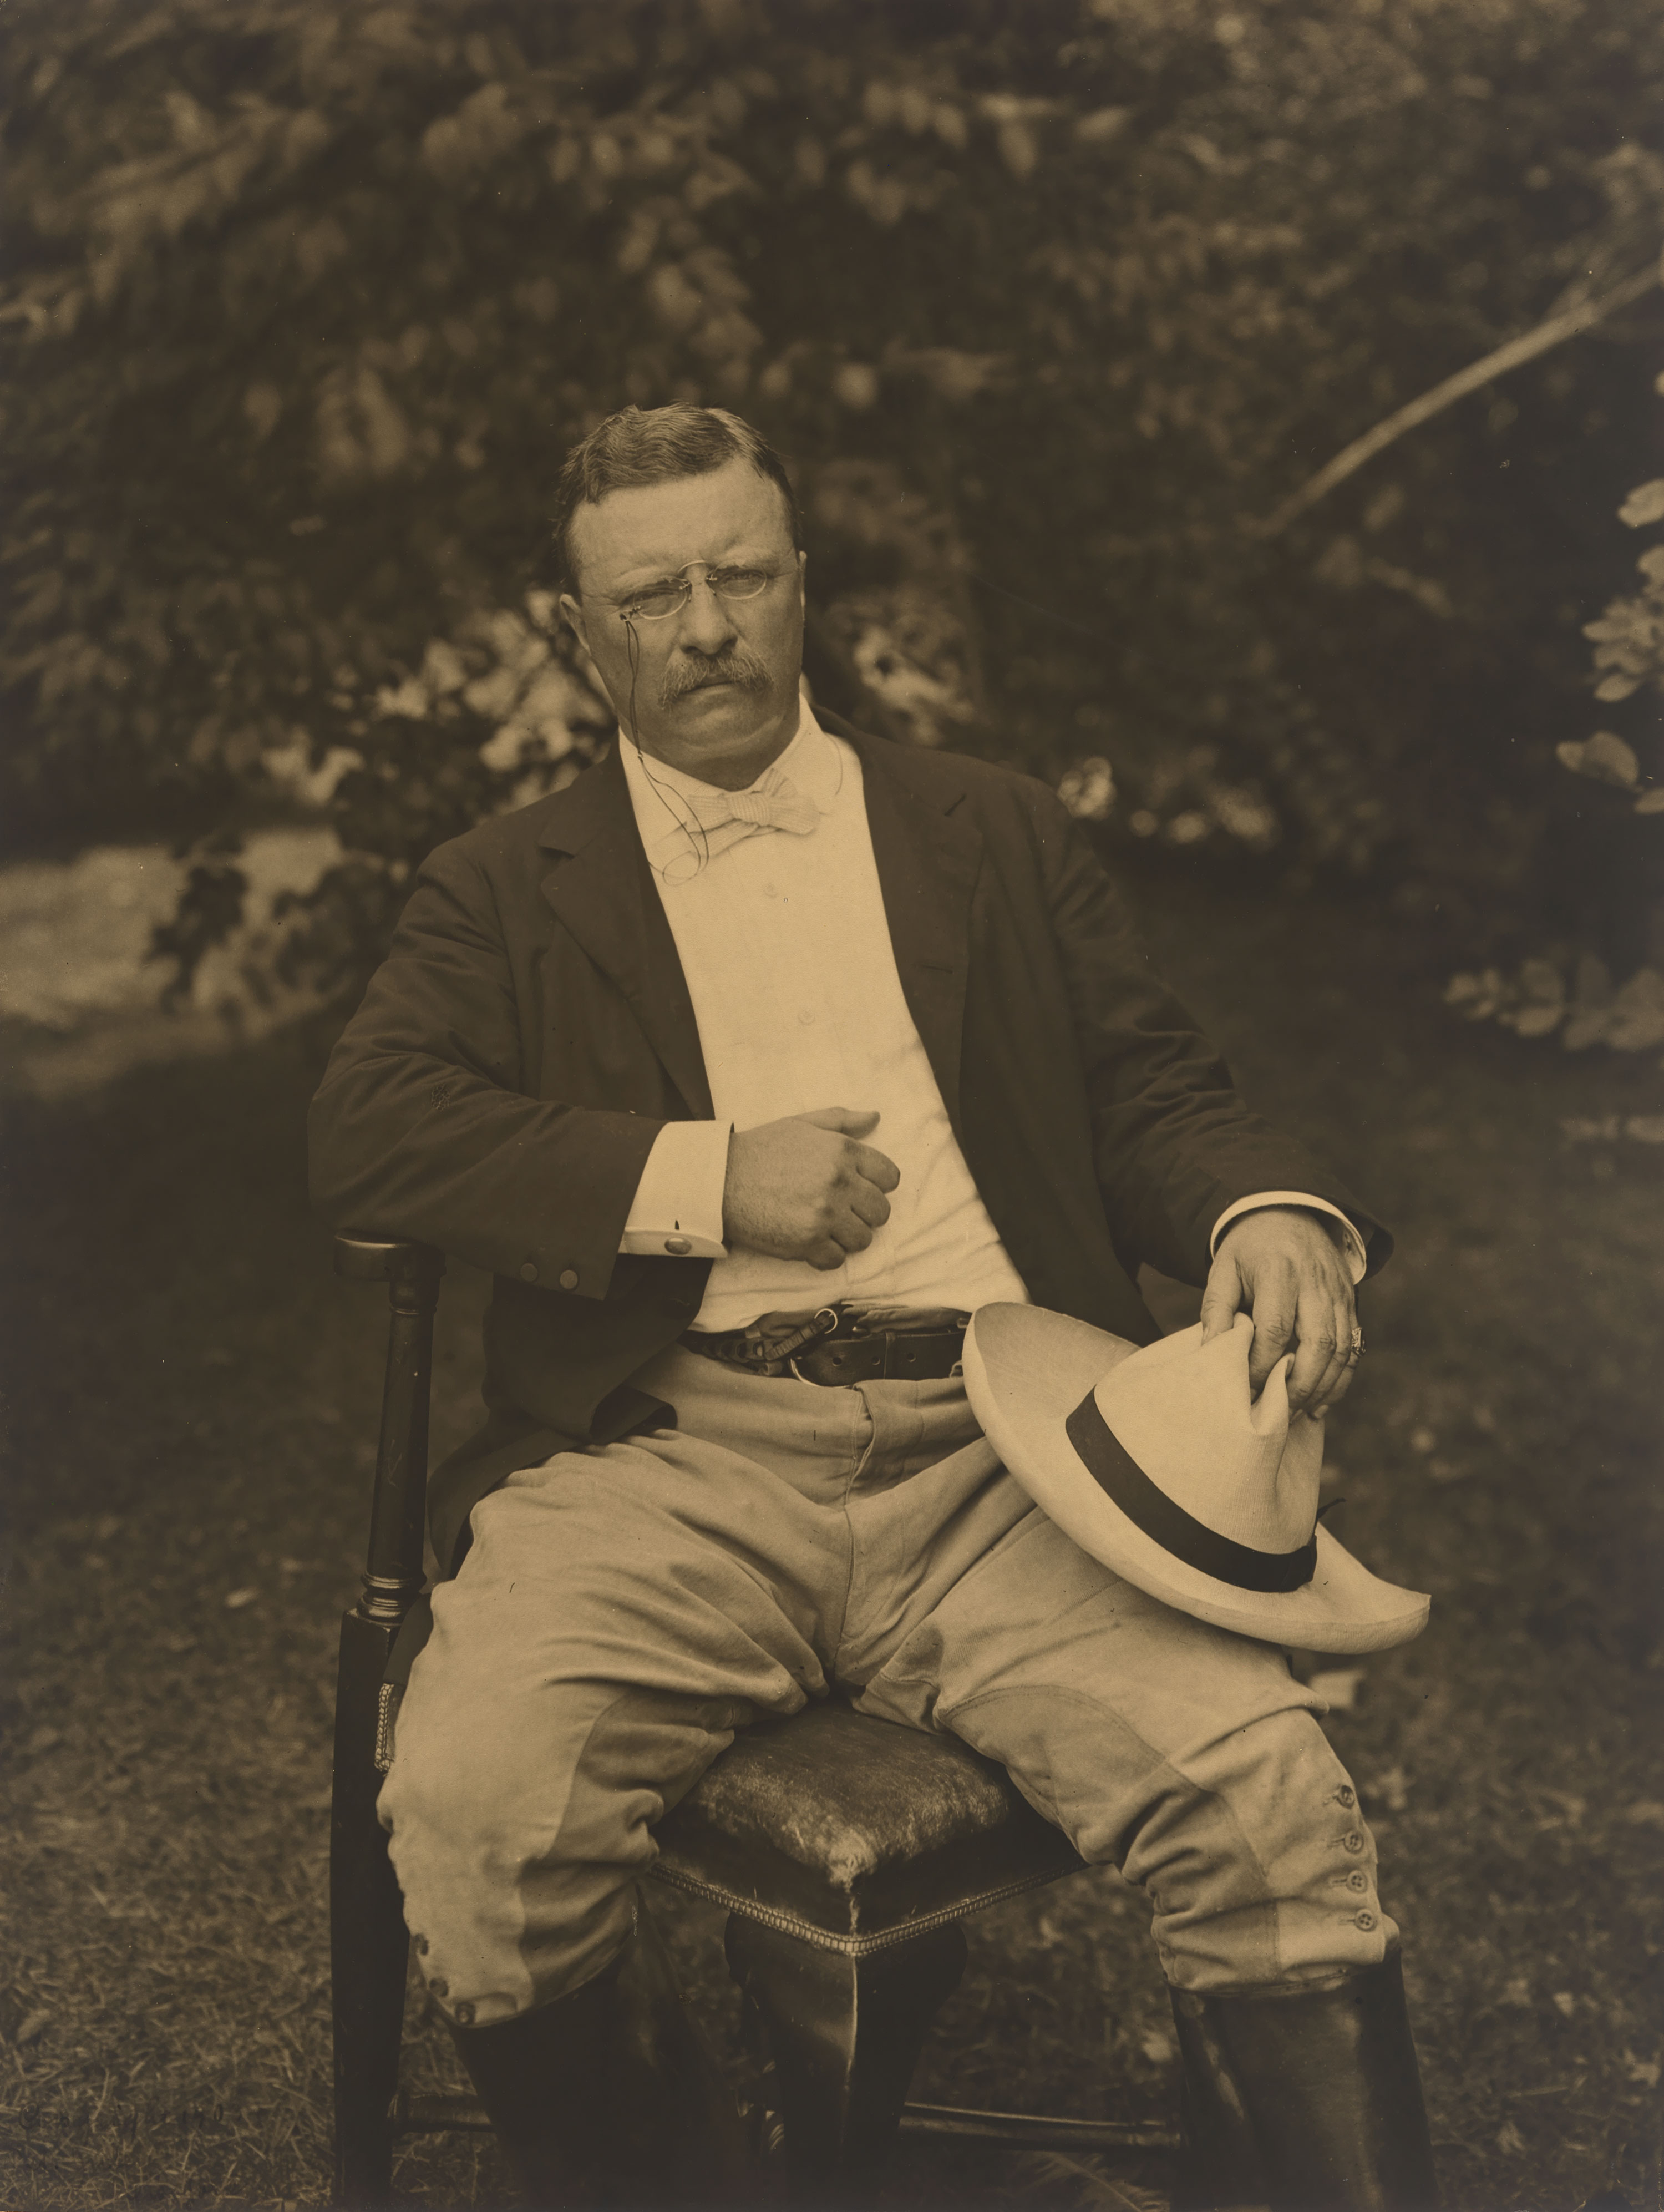 A man (Theodore Roosevelt) is wearing riding clothes, seated in a chair holding a Panama hat on his left leg.